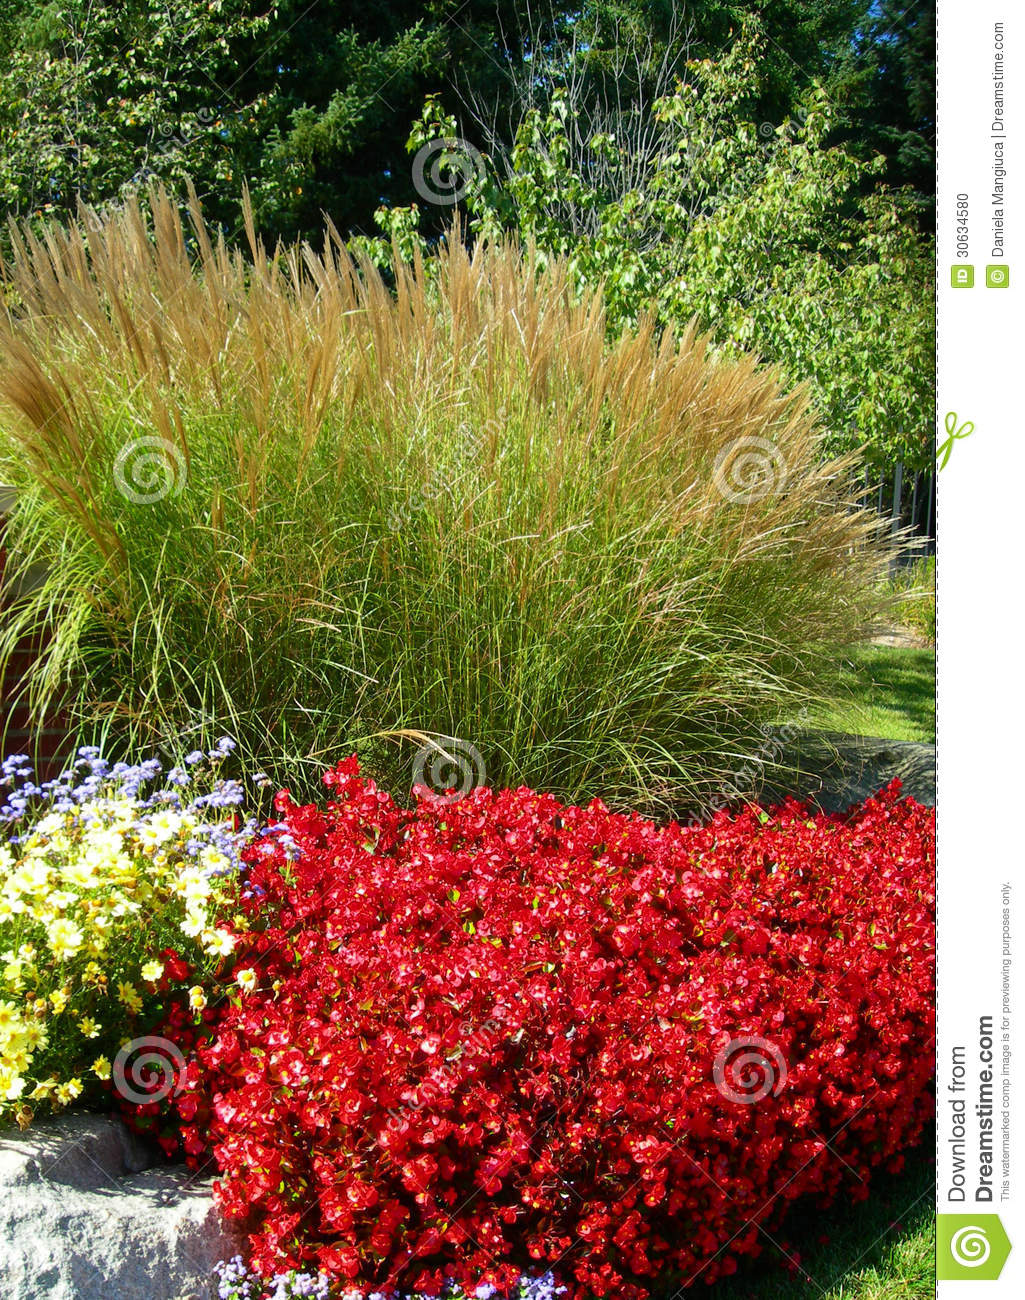 Ornamental green grass and red flower beds stock photo for Grass plants for flower beds